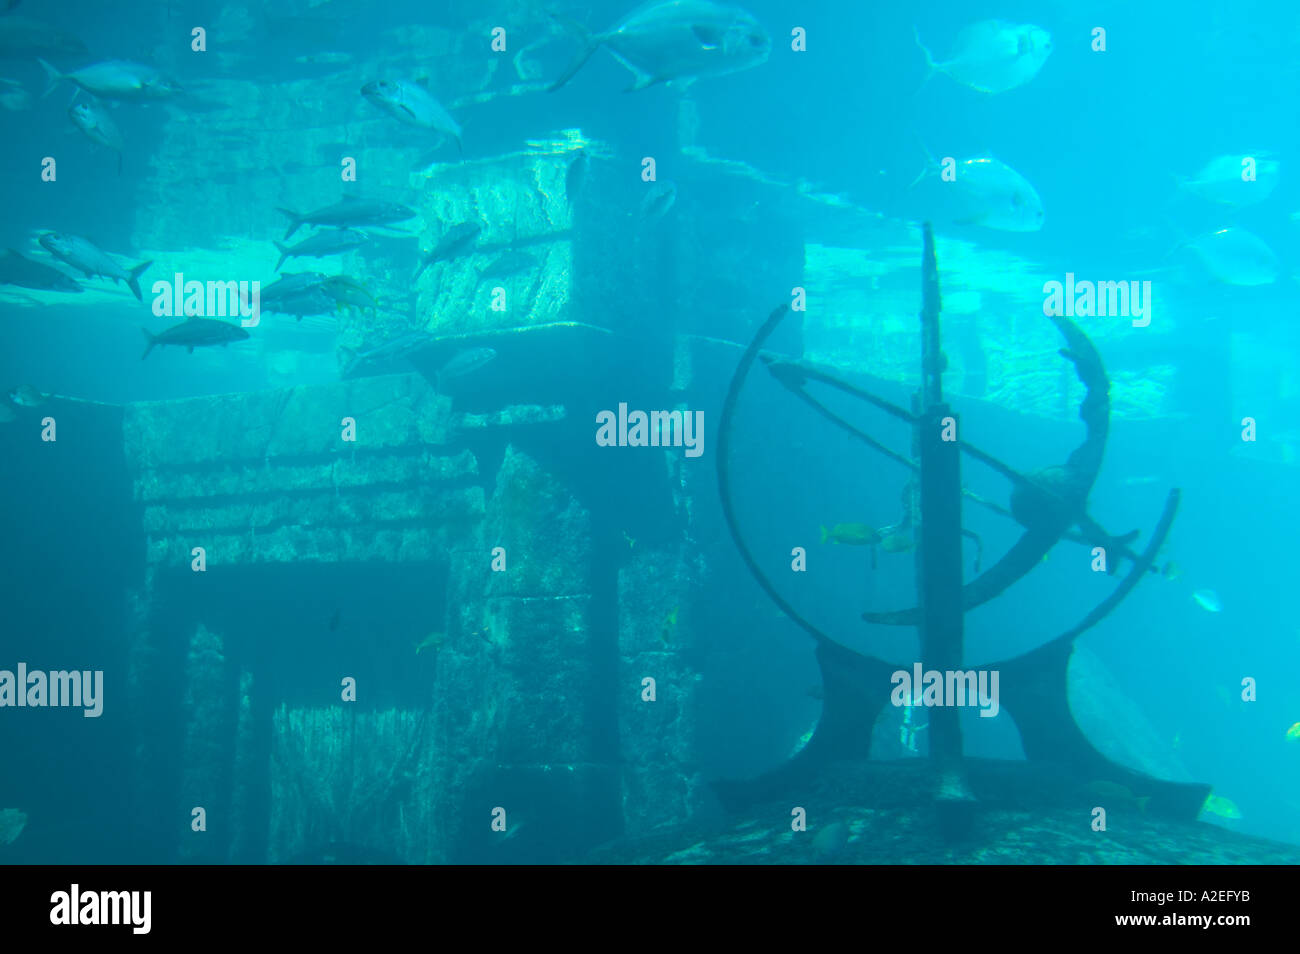 BAHAMAS, New Providence Island, Nassau: Atlantis Resort & Casino / Paradise Island, Ruins of Atlantis, Tropical Aquarium - Stock Image